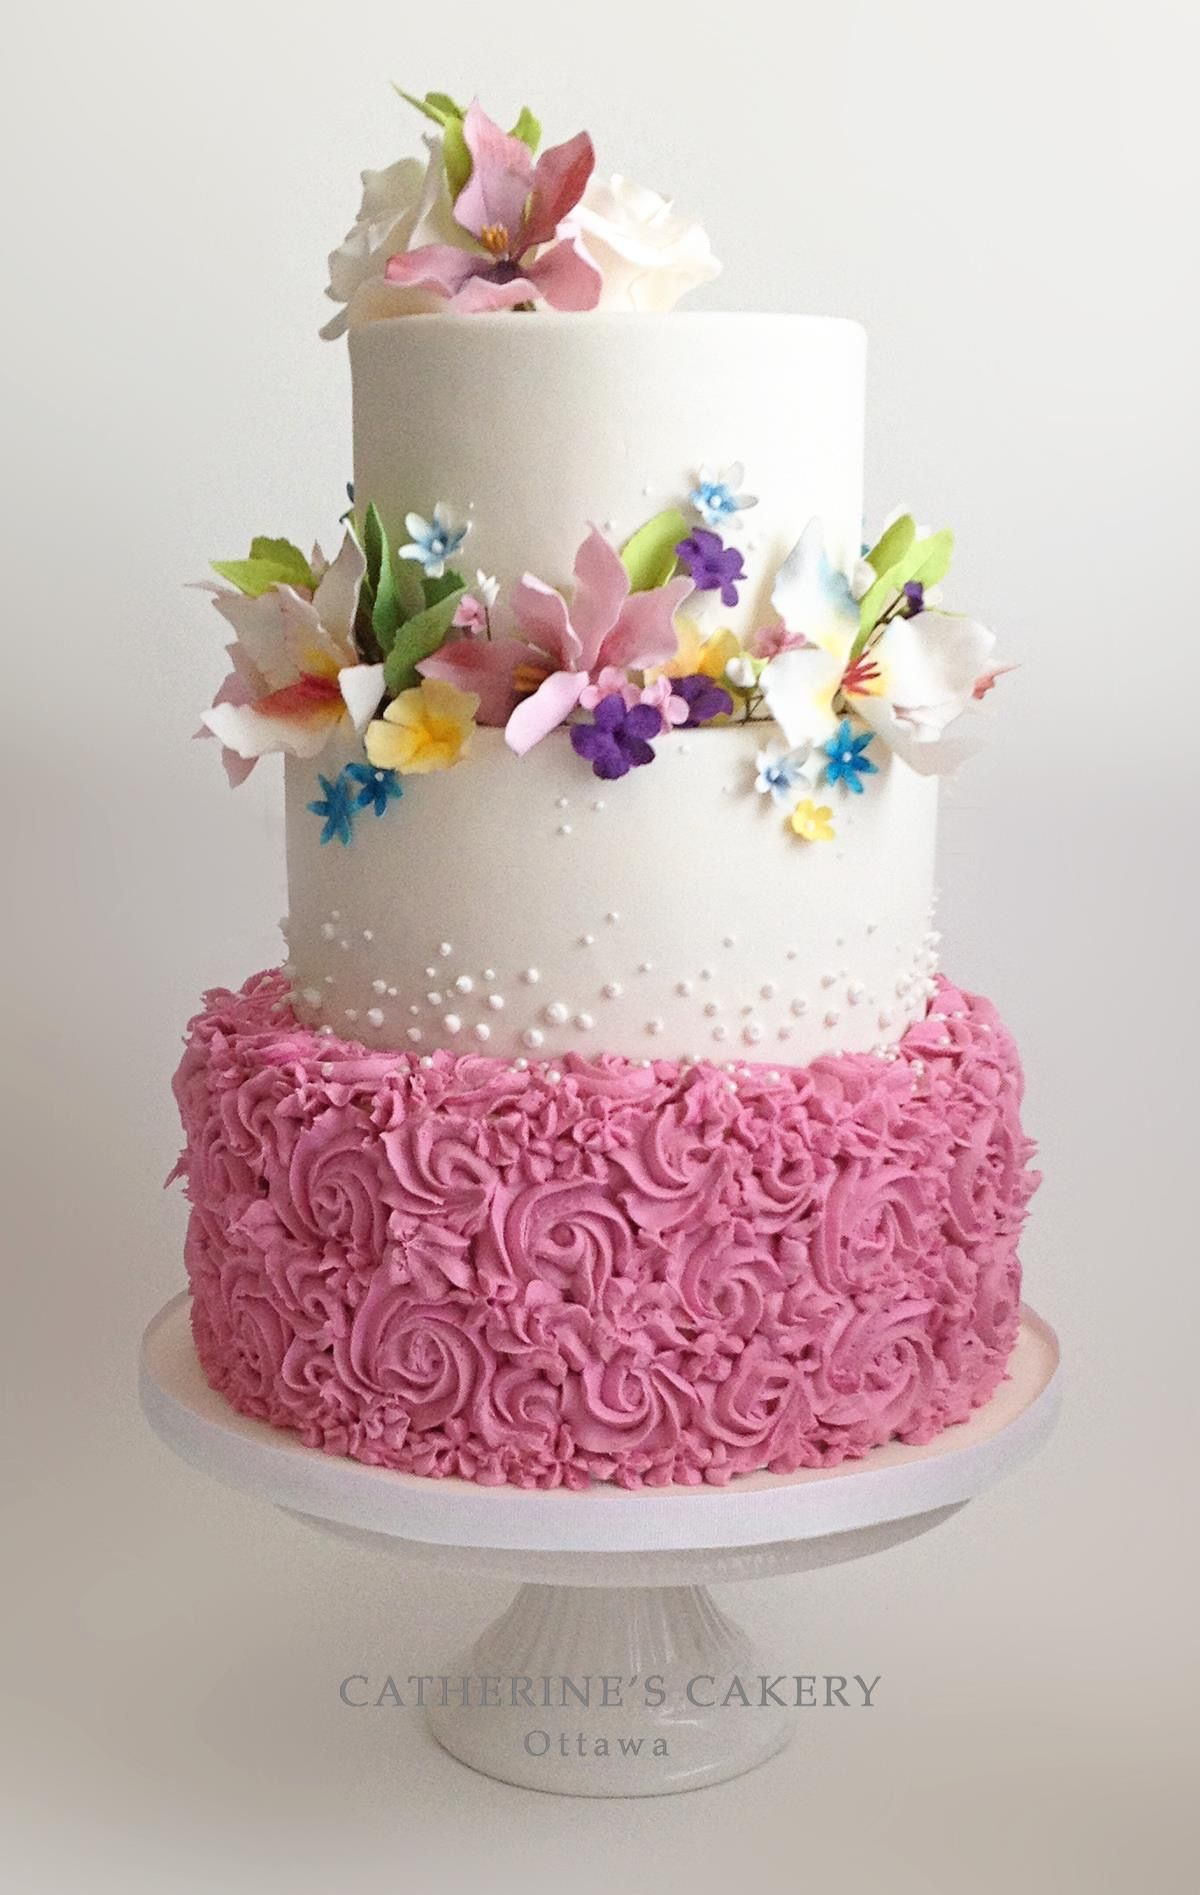 Wedding Cake;Buttercream Swirls & Sugar Flowers in the colors of the ...